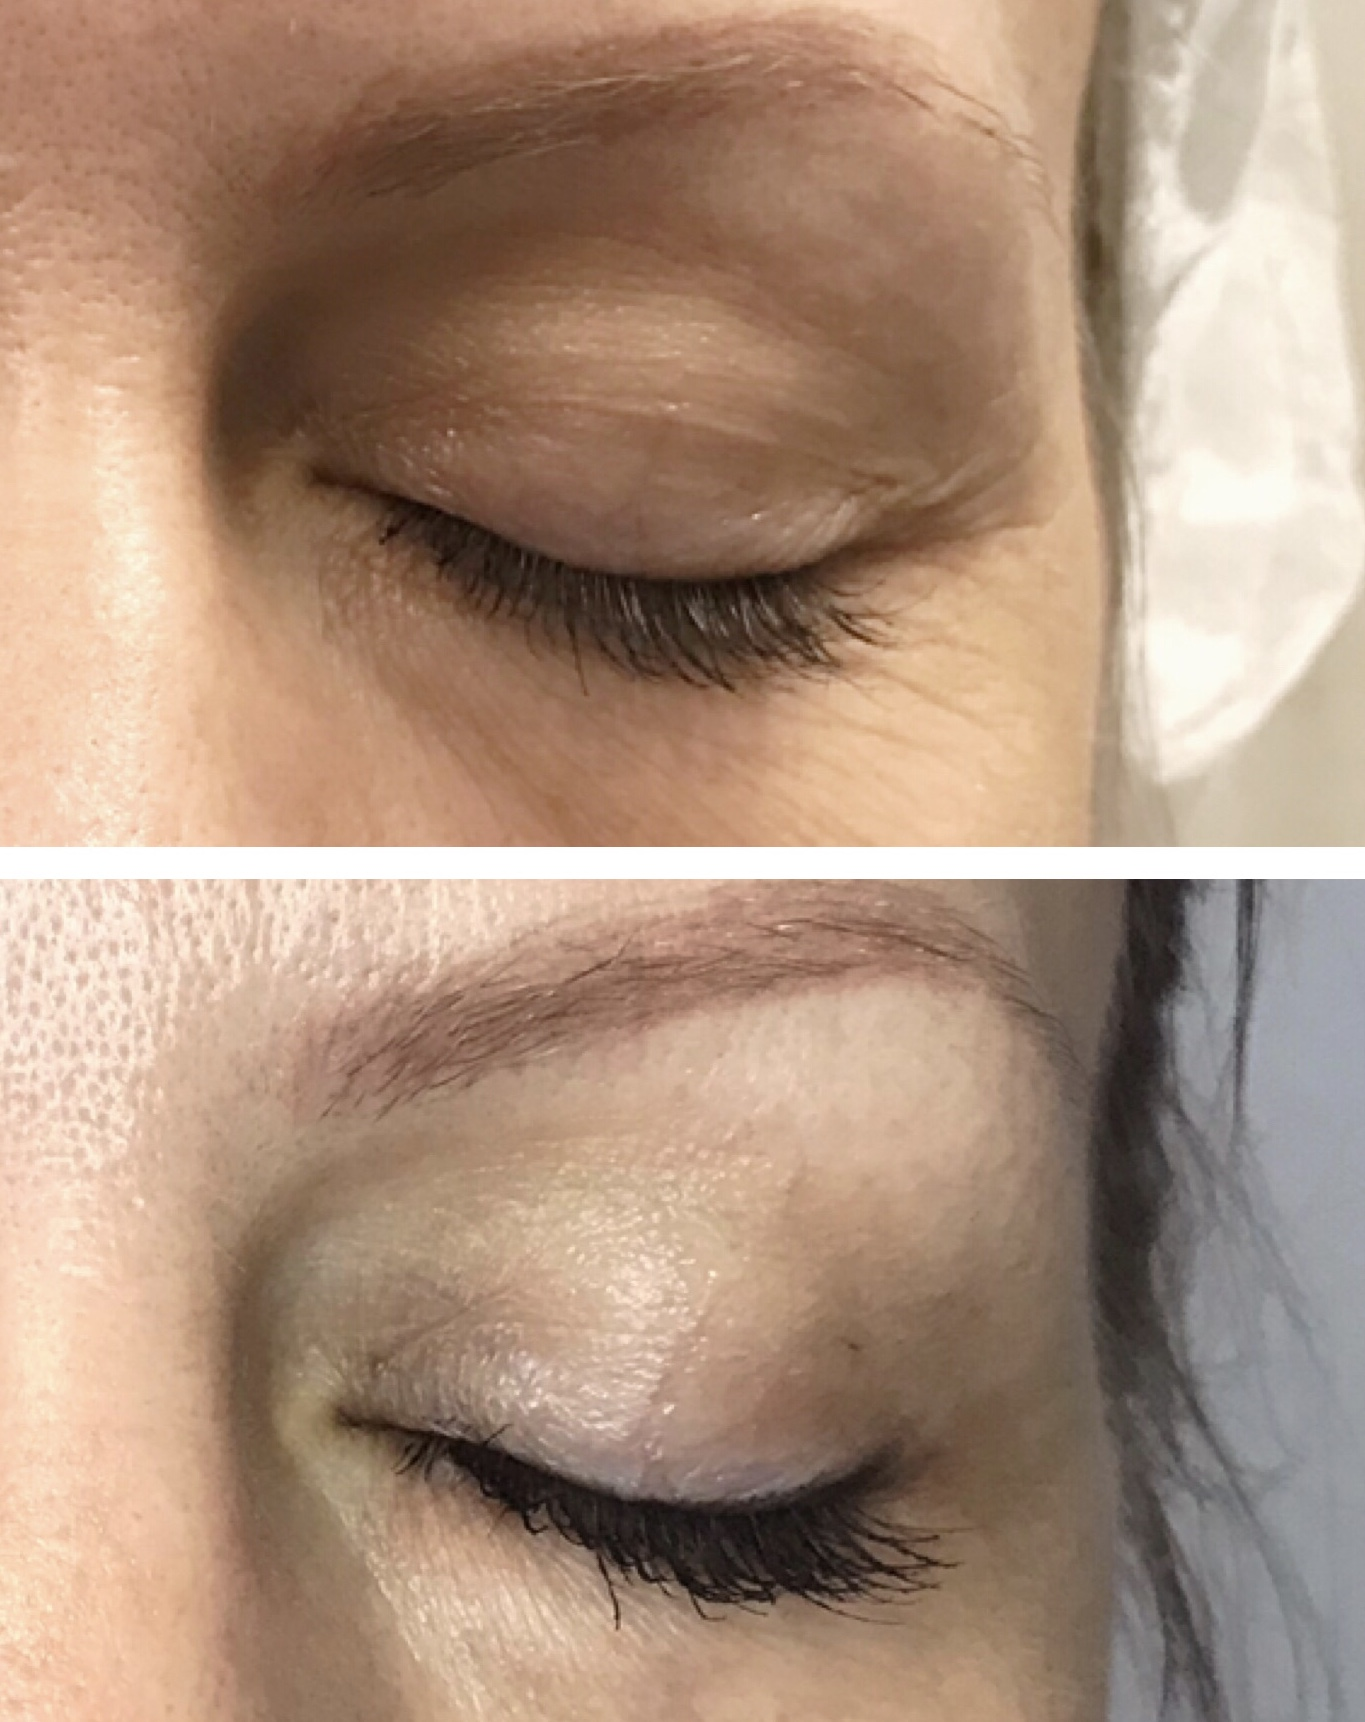 One treatment, 3 months healed. Eyelid and fine lines treatment. Less sagging skin on the lid, crows feet and fine lines reversed.